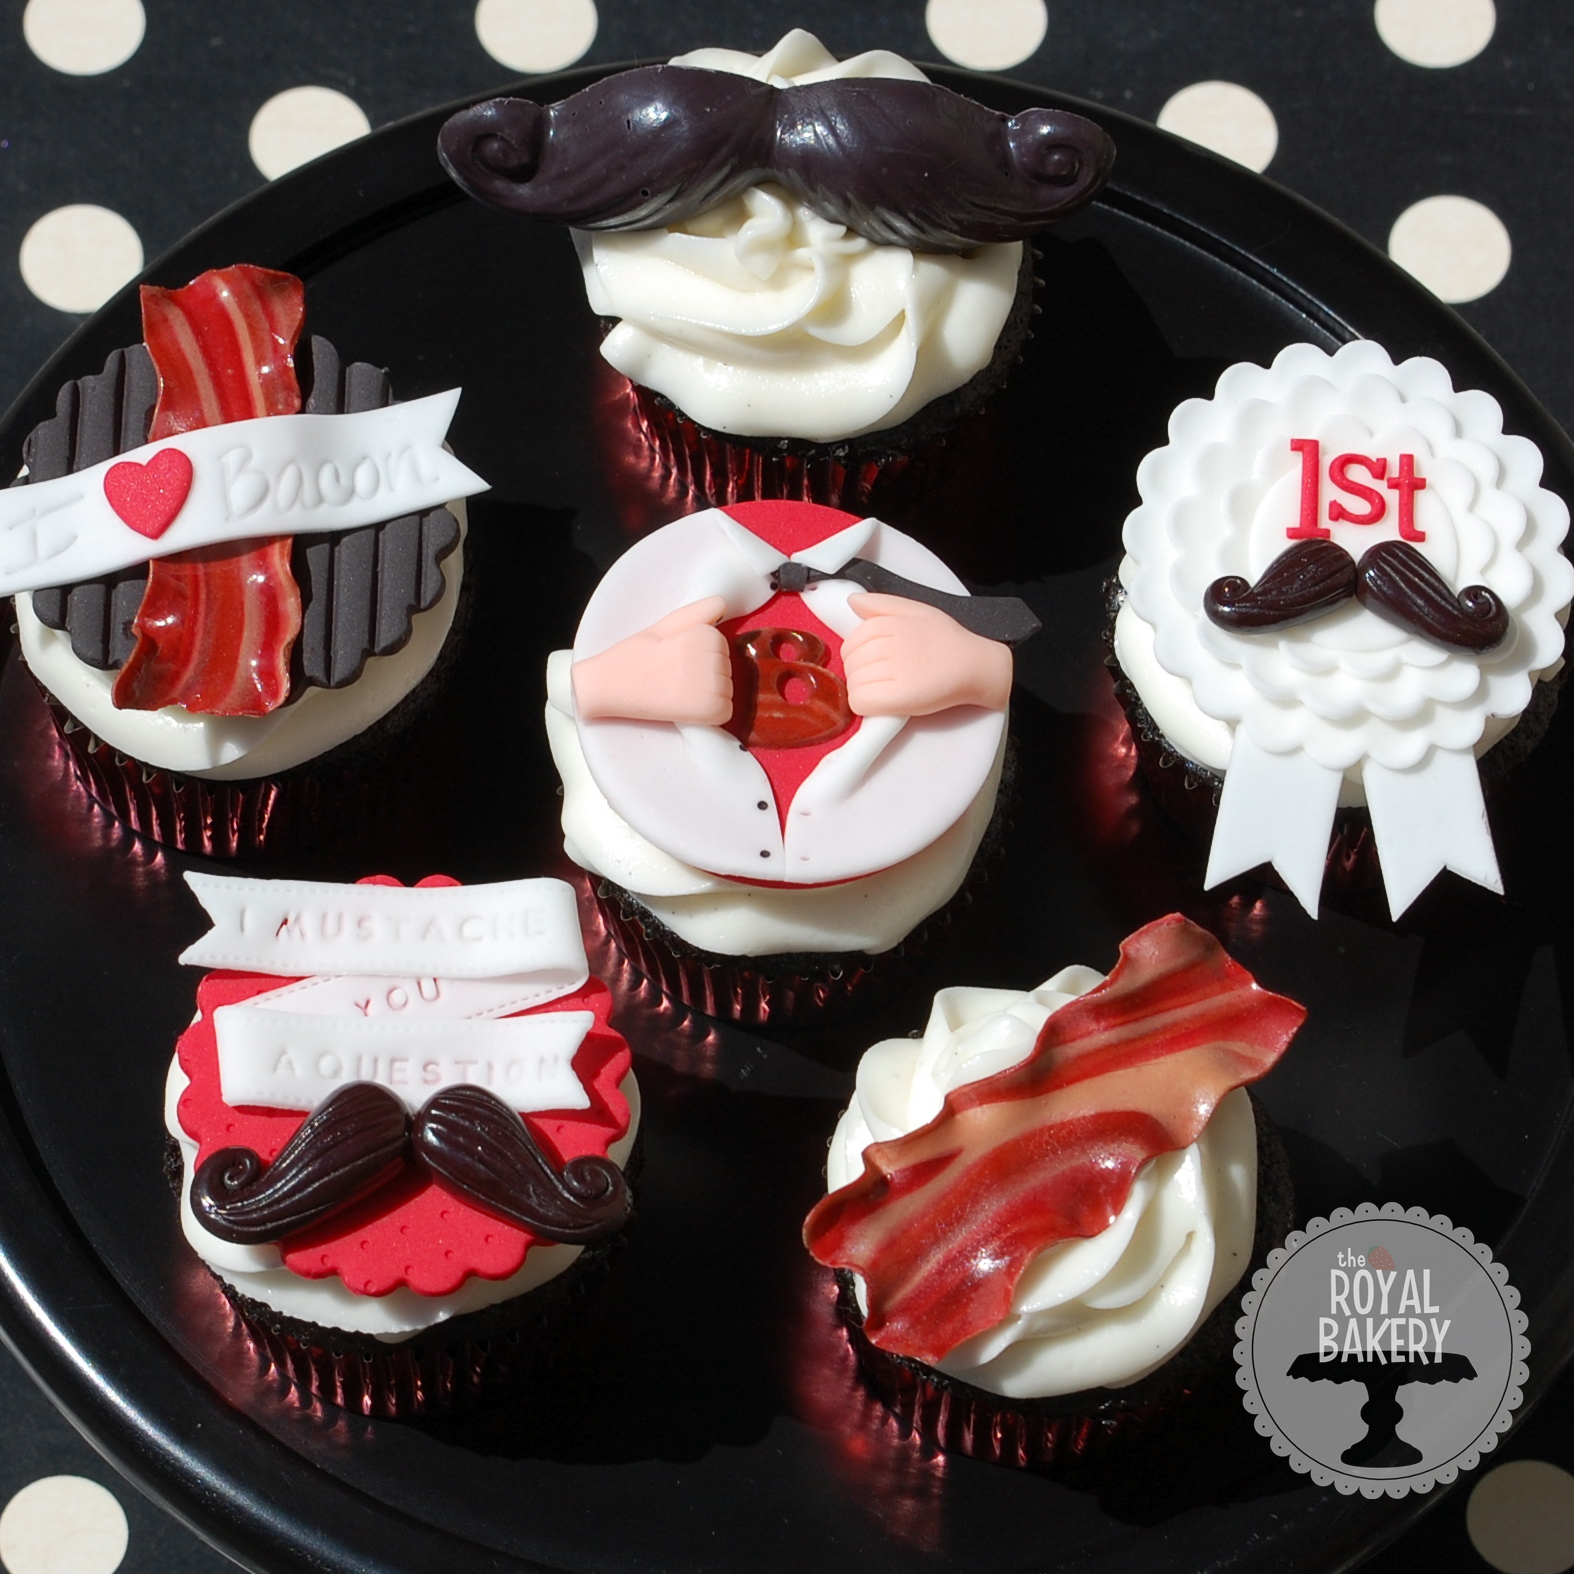 Series of Cupcakes with Red, Black, and White Shiny Tops